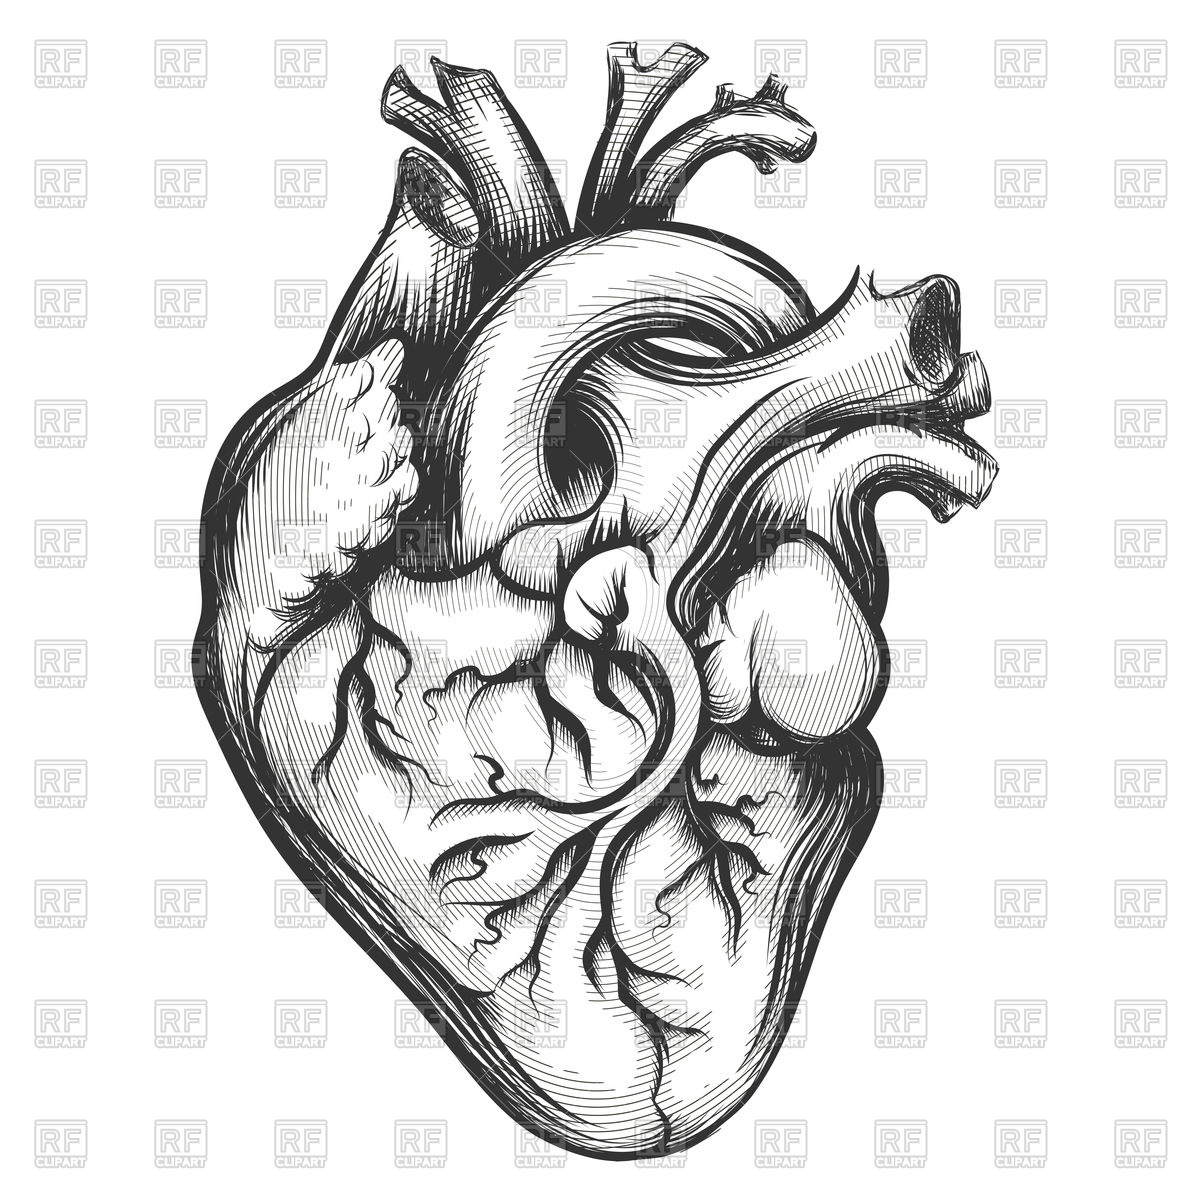 1200x1200 Human Heart Drawn In Engraving Style Vector Image Vector Artwork